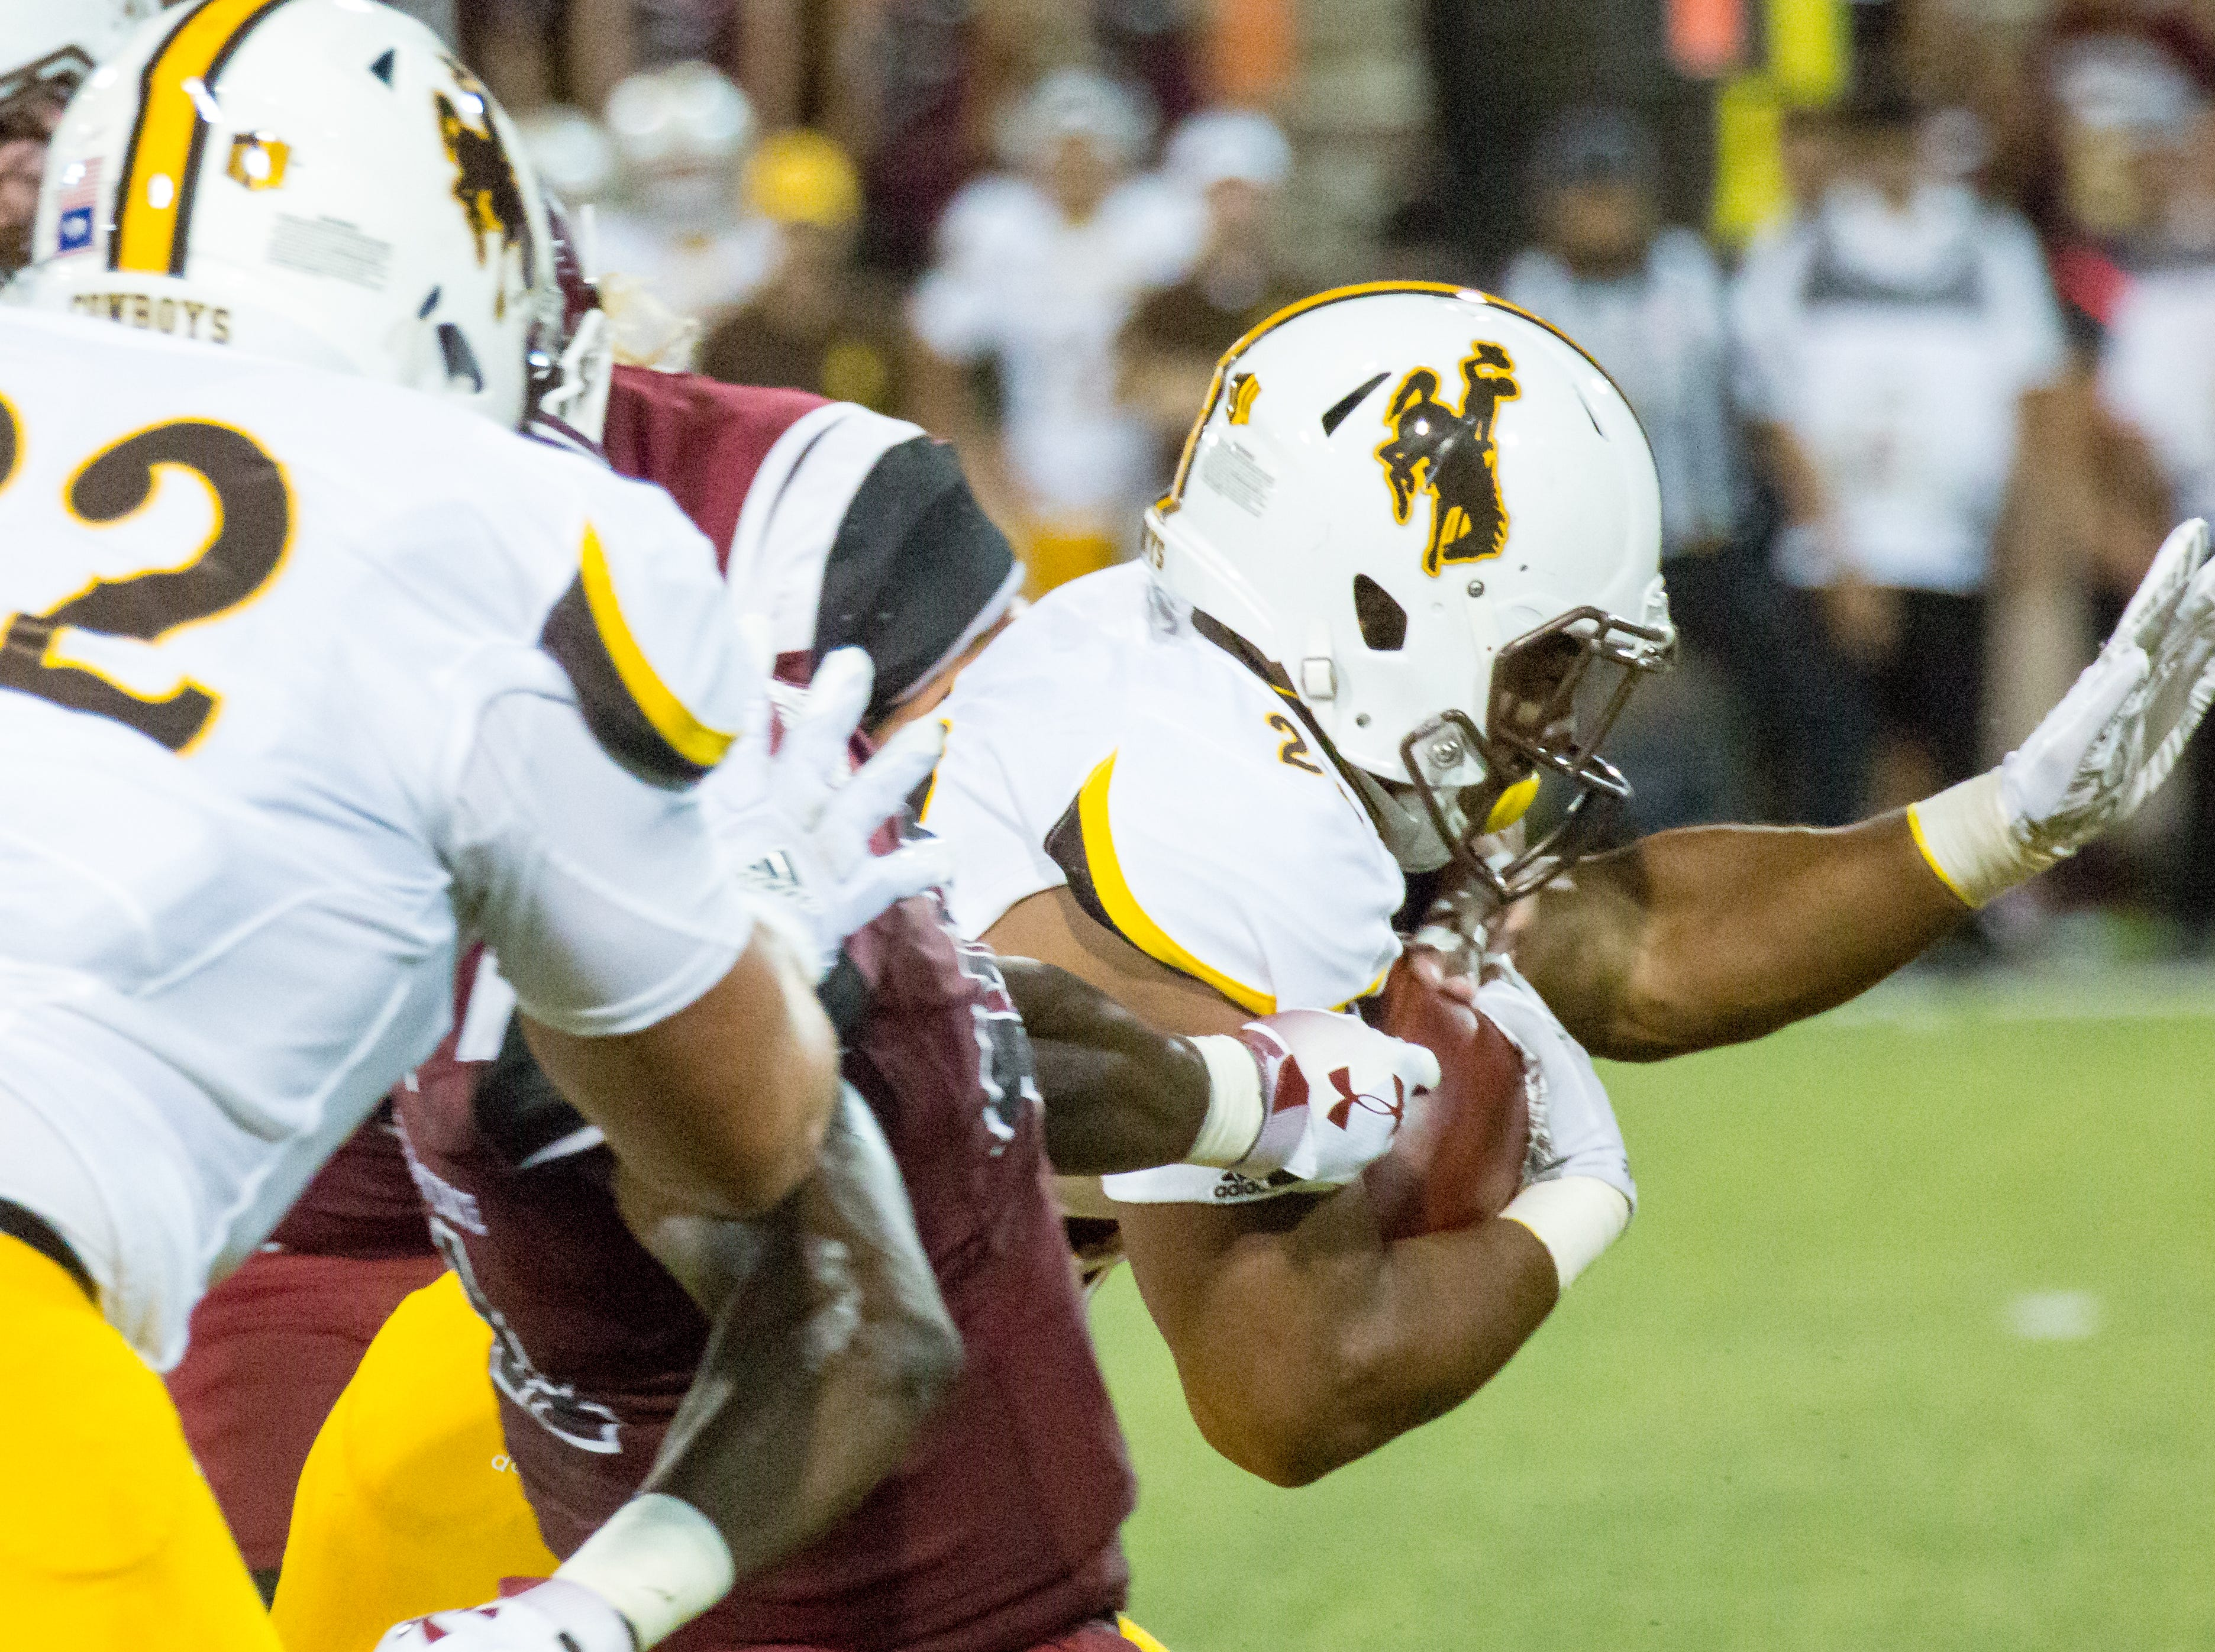 Wyoming running back Nico Evans reaches foward as he looks for more yards on Saturday, August 25, 2018, during the NMSU/Wyoming game at the Aggie Memorial Stadium.